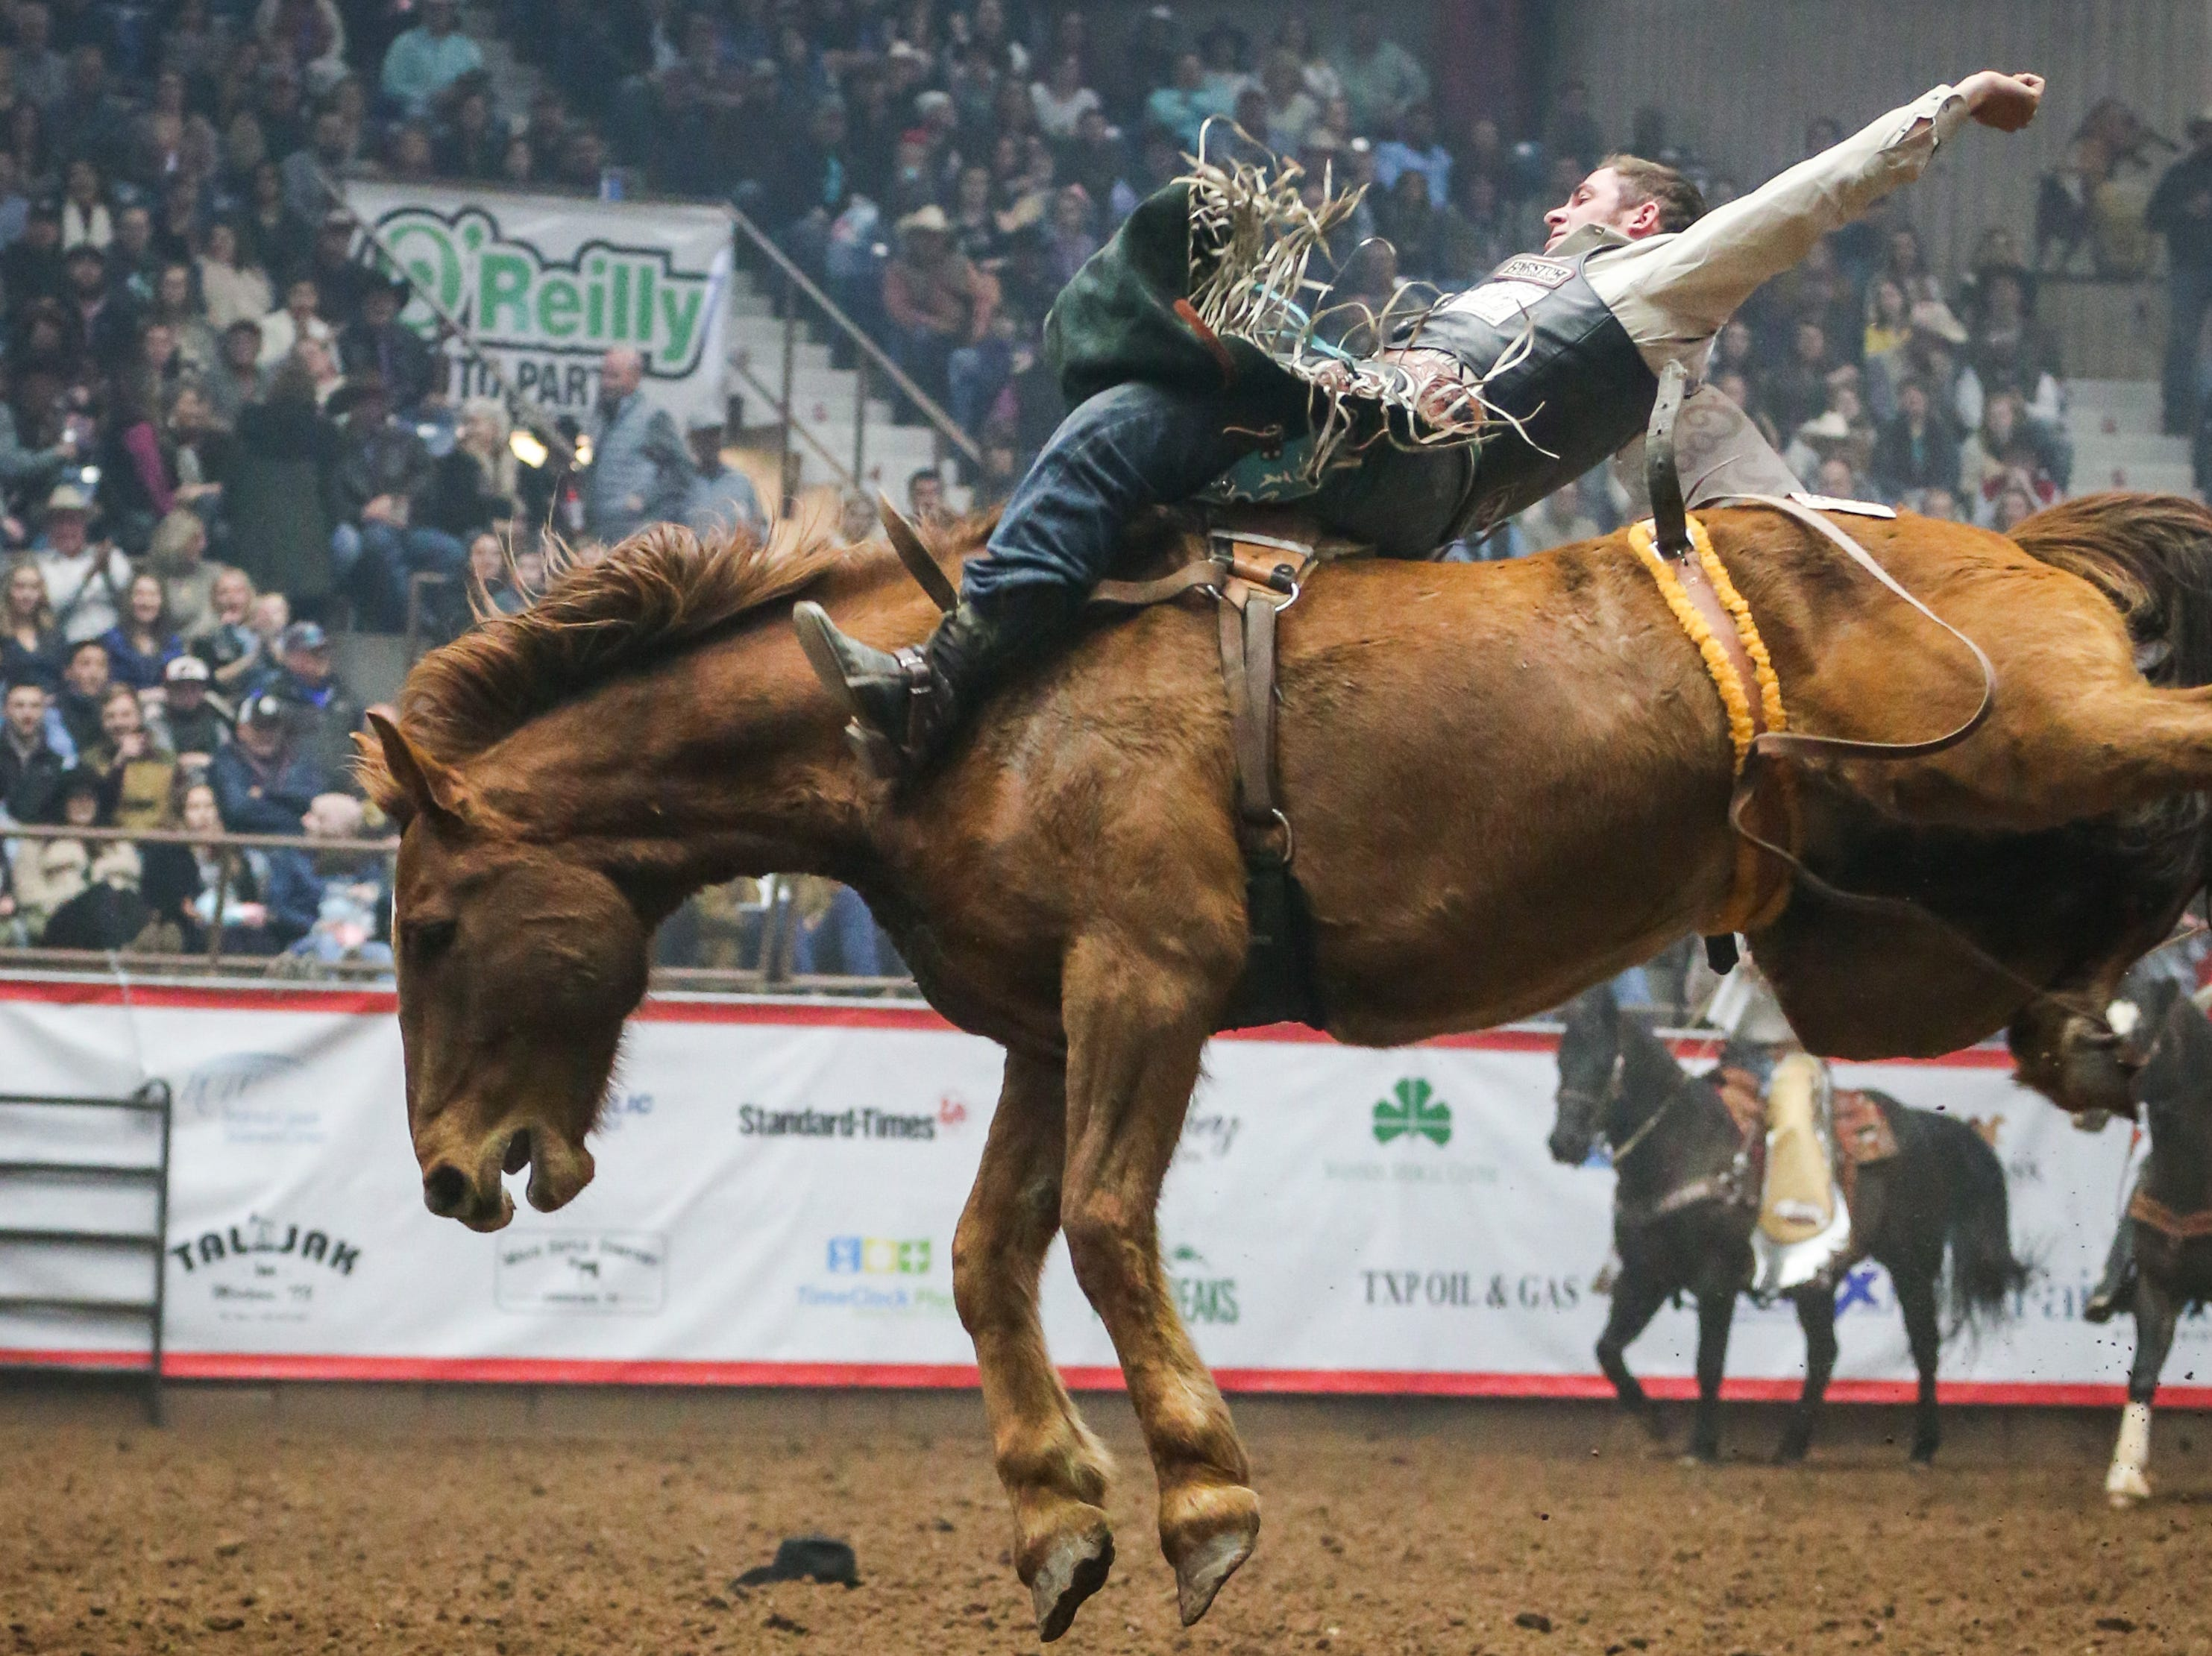 Austin Foss rides bareback during the San Angelo Stock Show & Rodeo show Saturday, Feb. 9, 2019, at Foster Communications Coliseum. He had an 85 point ride.